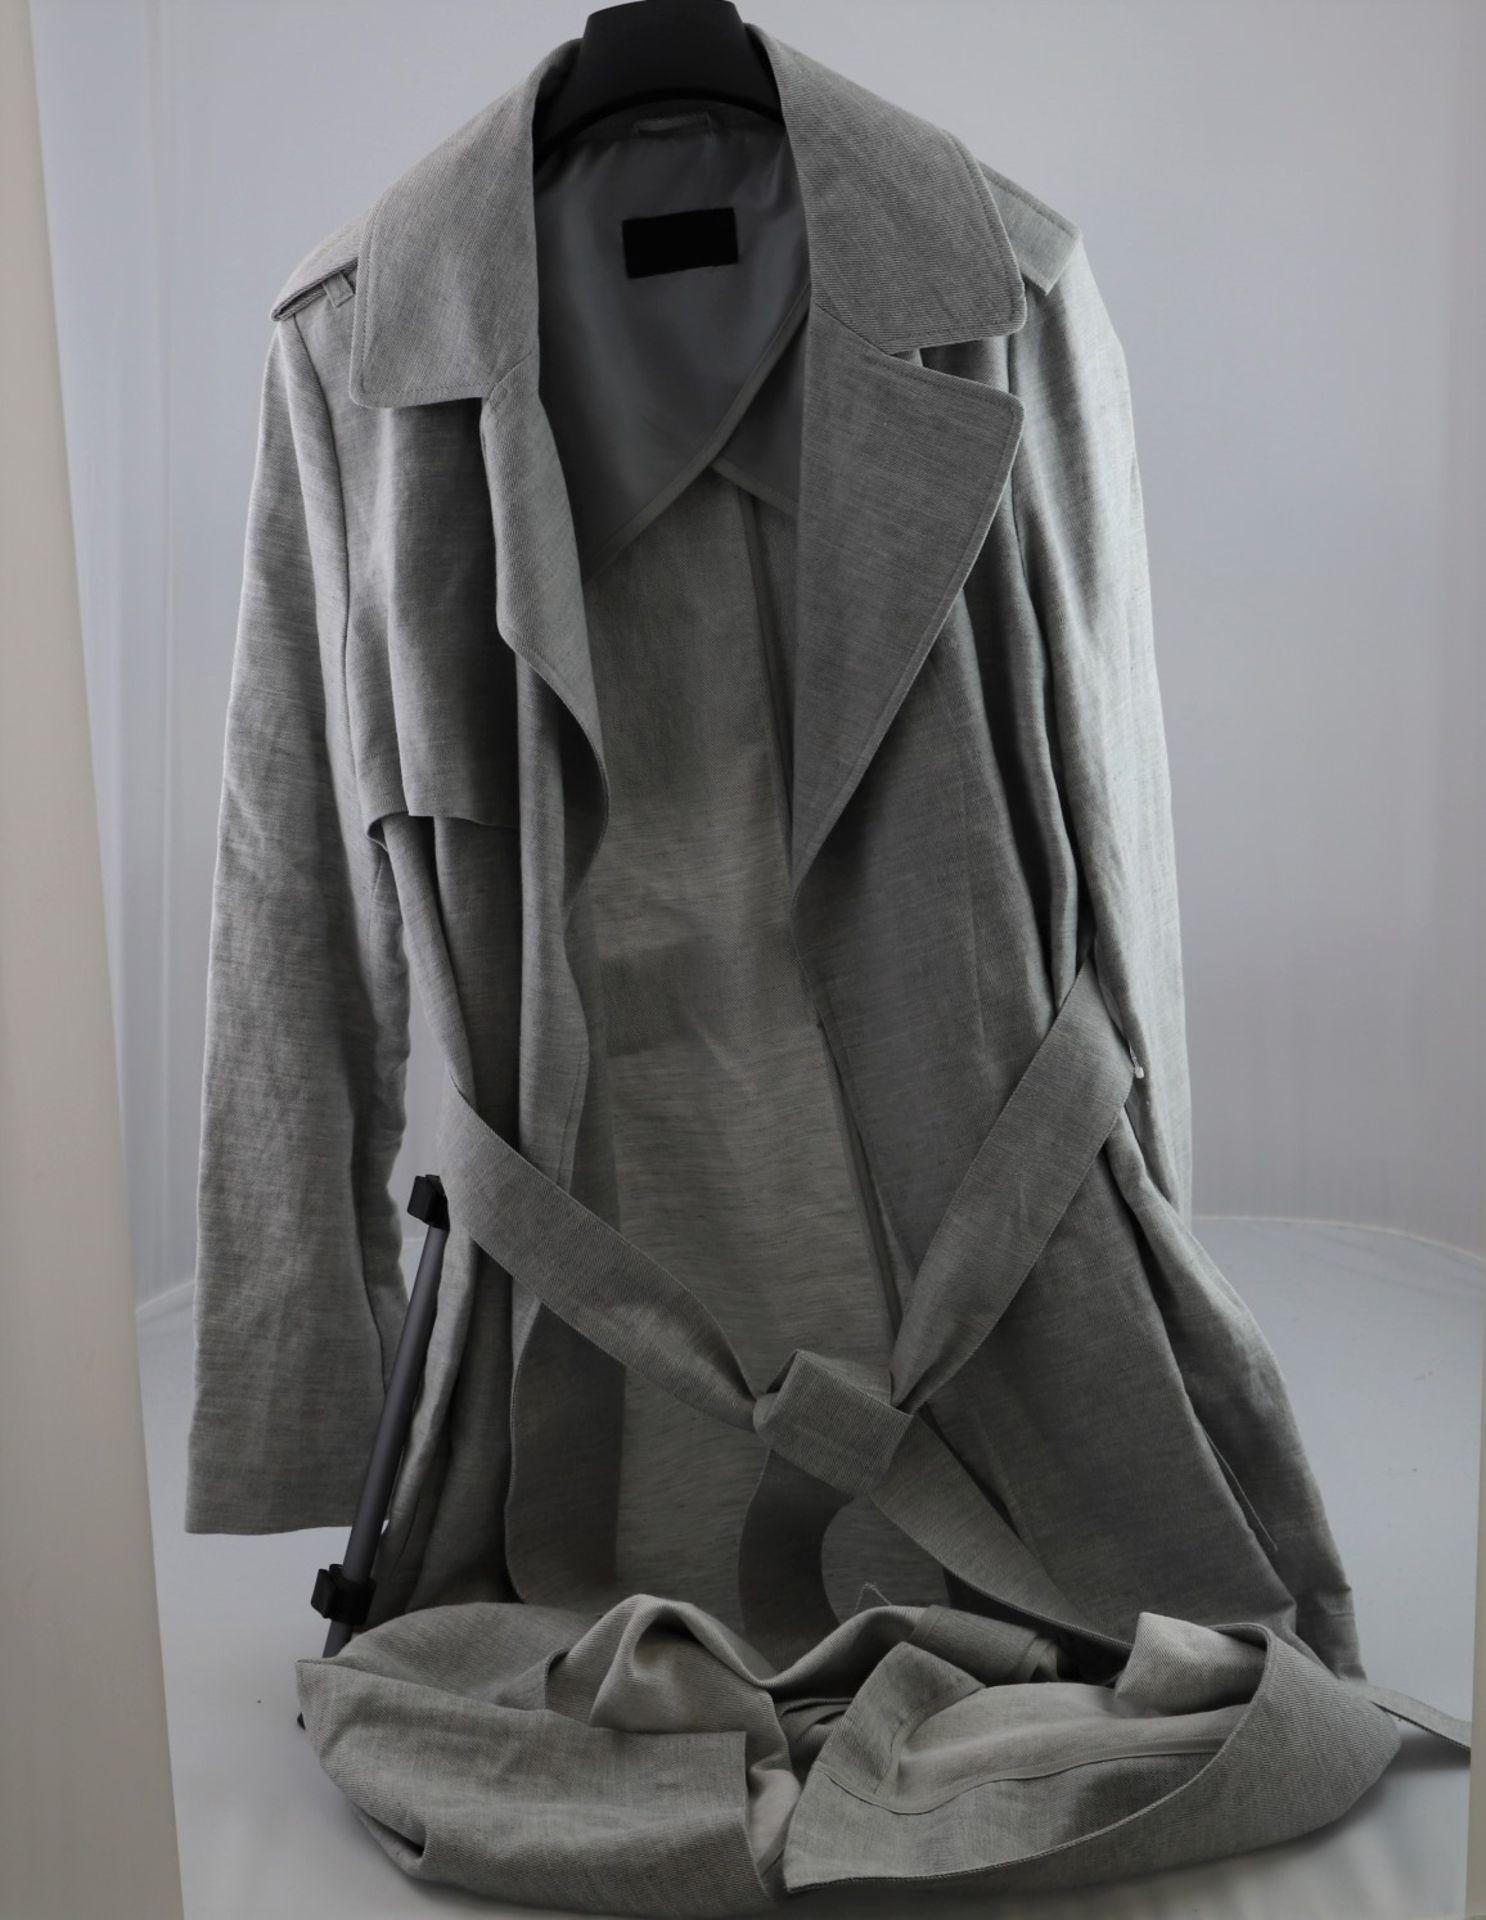 1 x mixed pallet = 125 items of Grade A M&S Womenswear. Approx Total RRP £5100.50 - Image 3 of 8